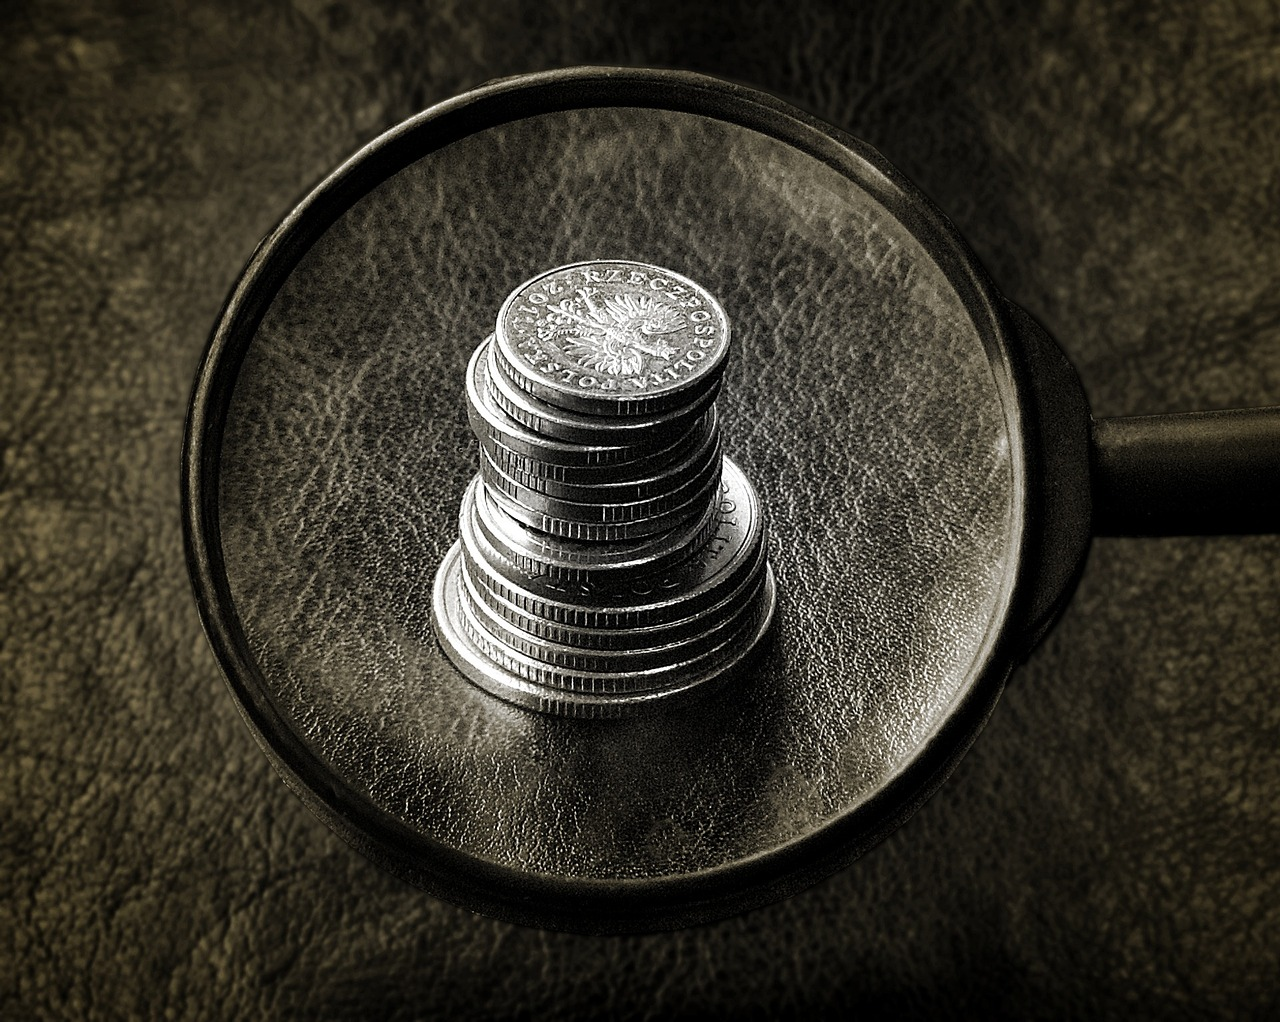 Magnifying glass of a stack of coins